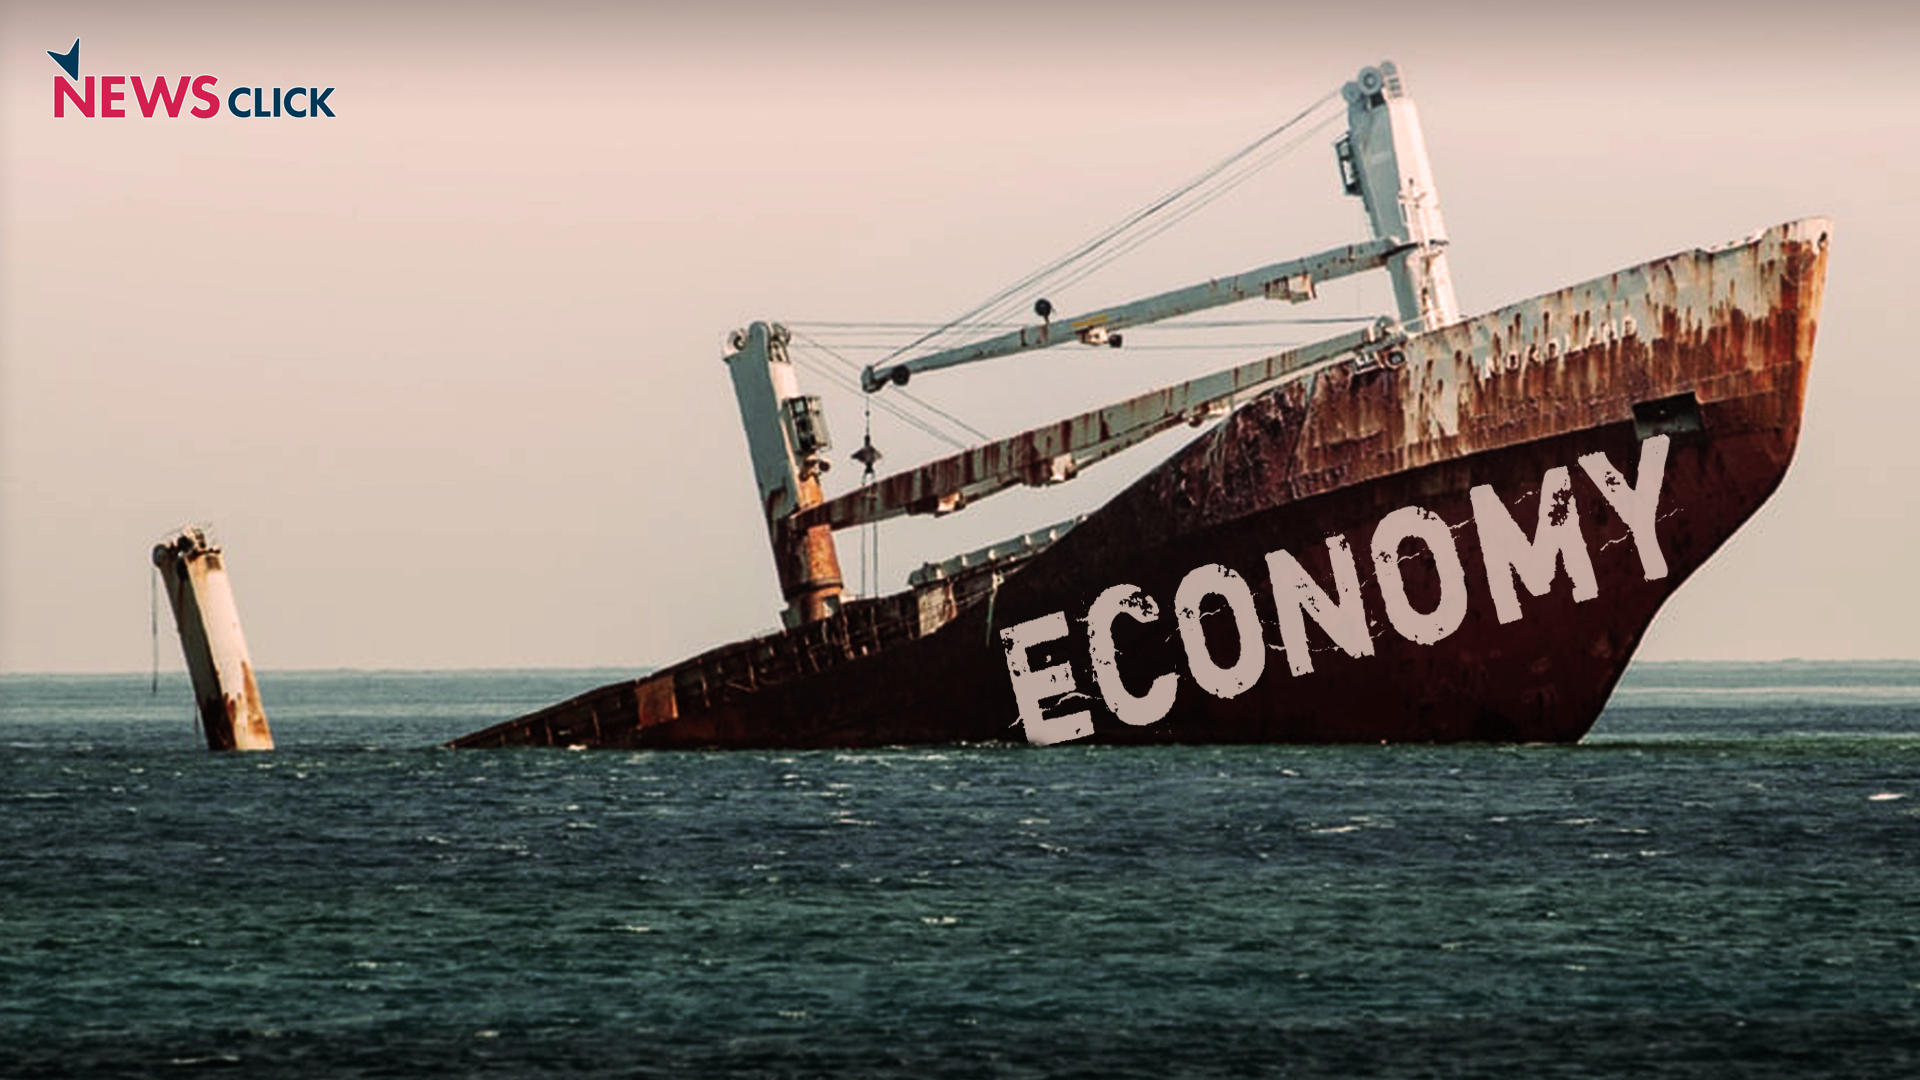 https://www.newsclick.in/sites/default/files/2019-08/Indian_Economy_Crisis_1.jpg